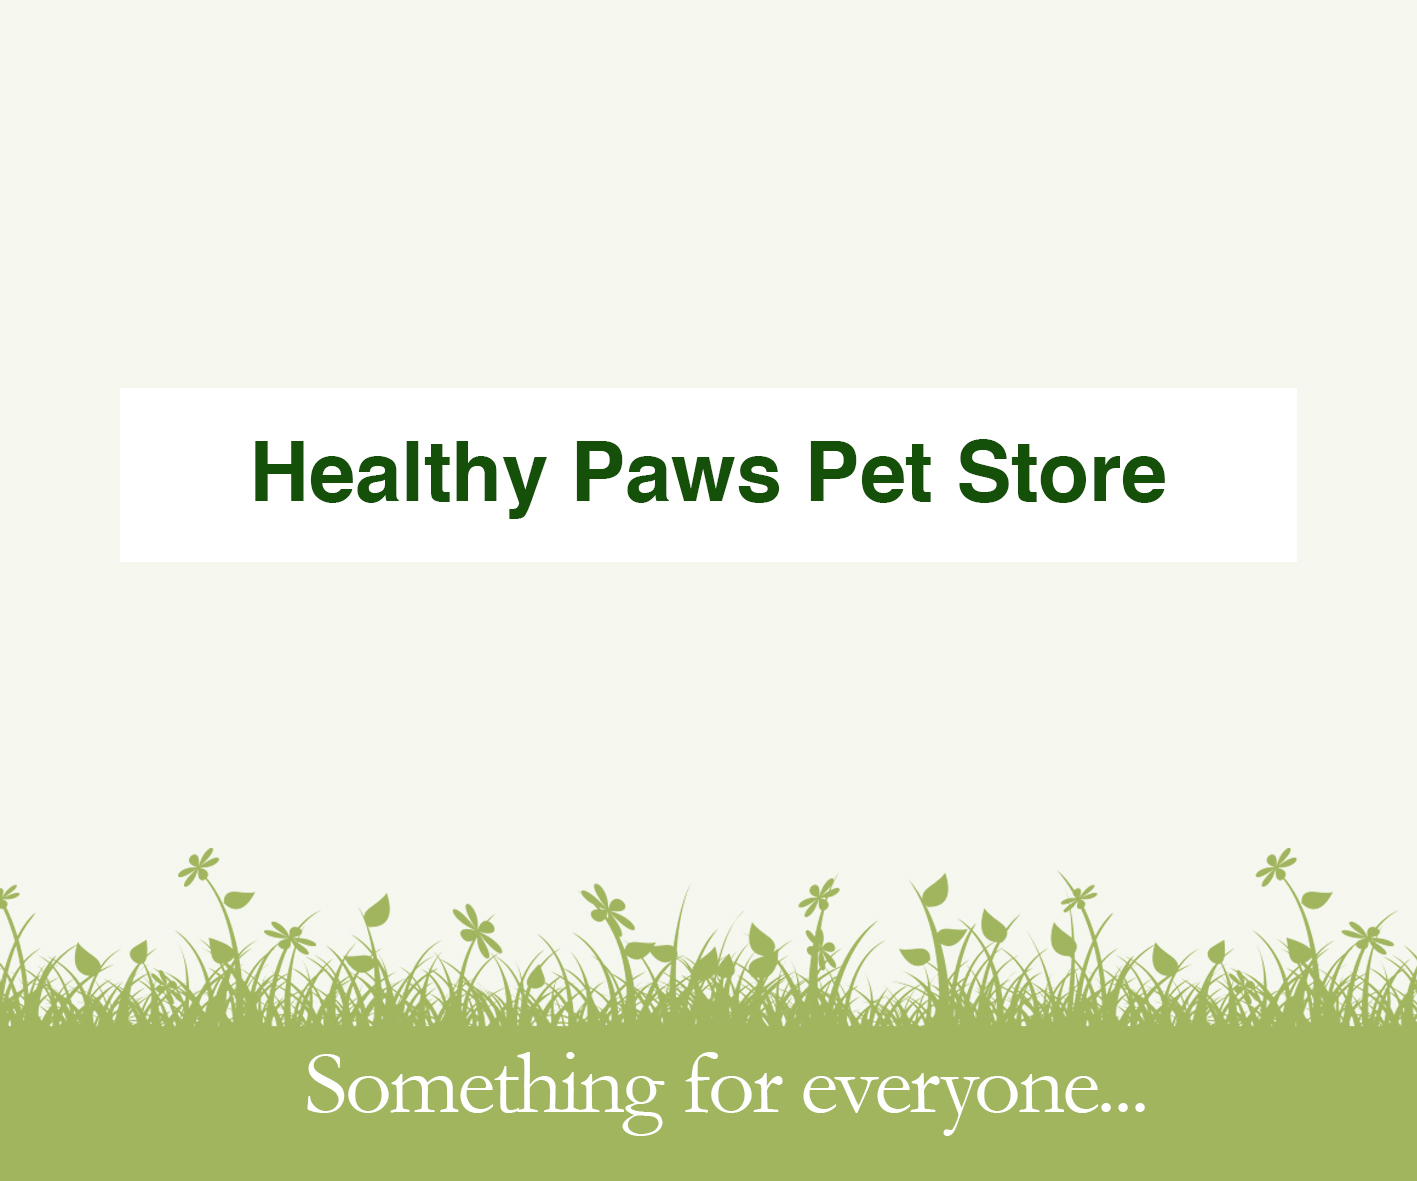 Healthy Paws Pet Store at Charlecote Garden Centre